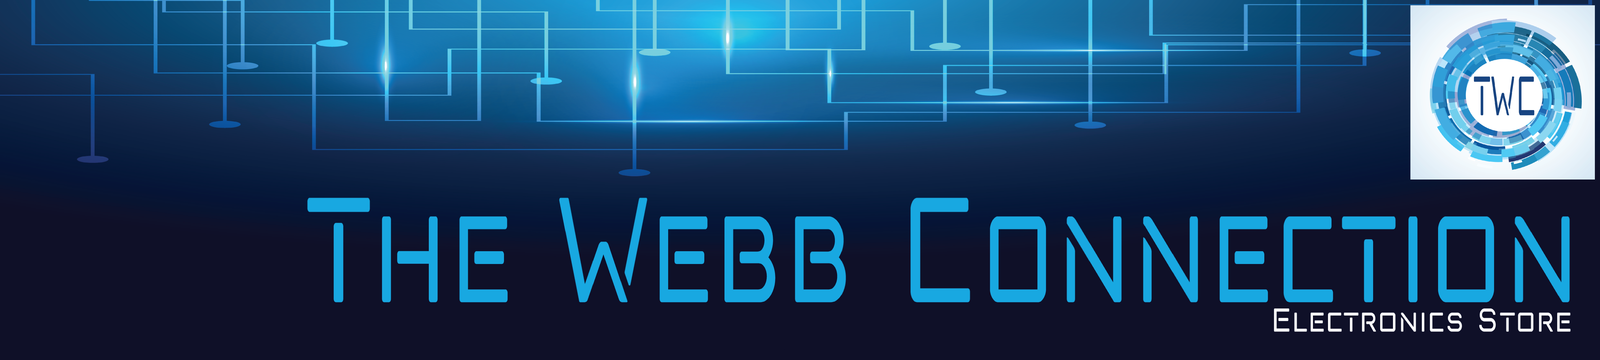 The Webb Connection